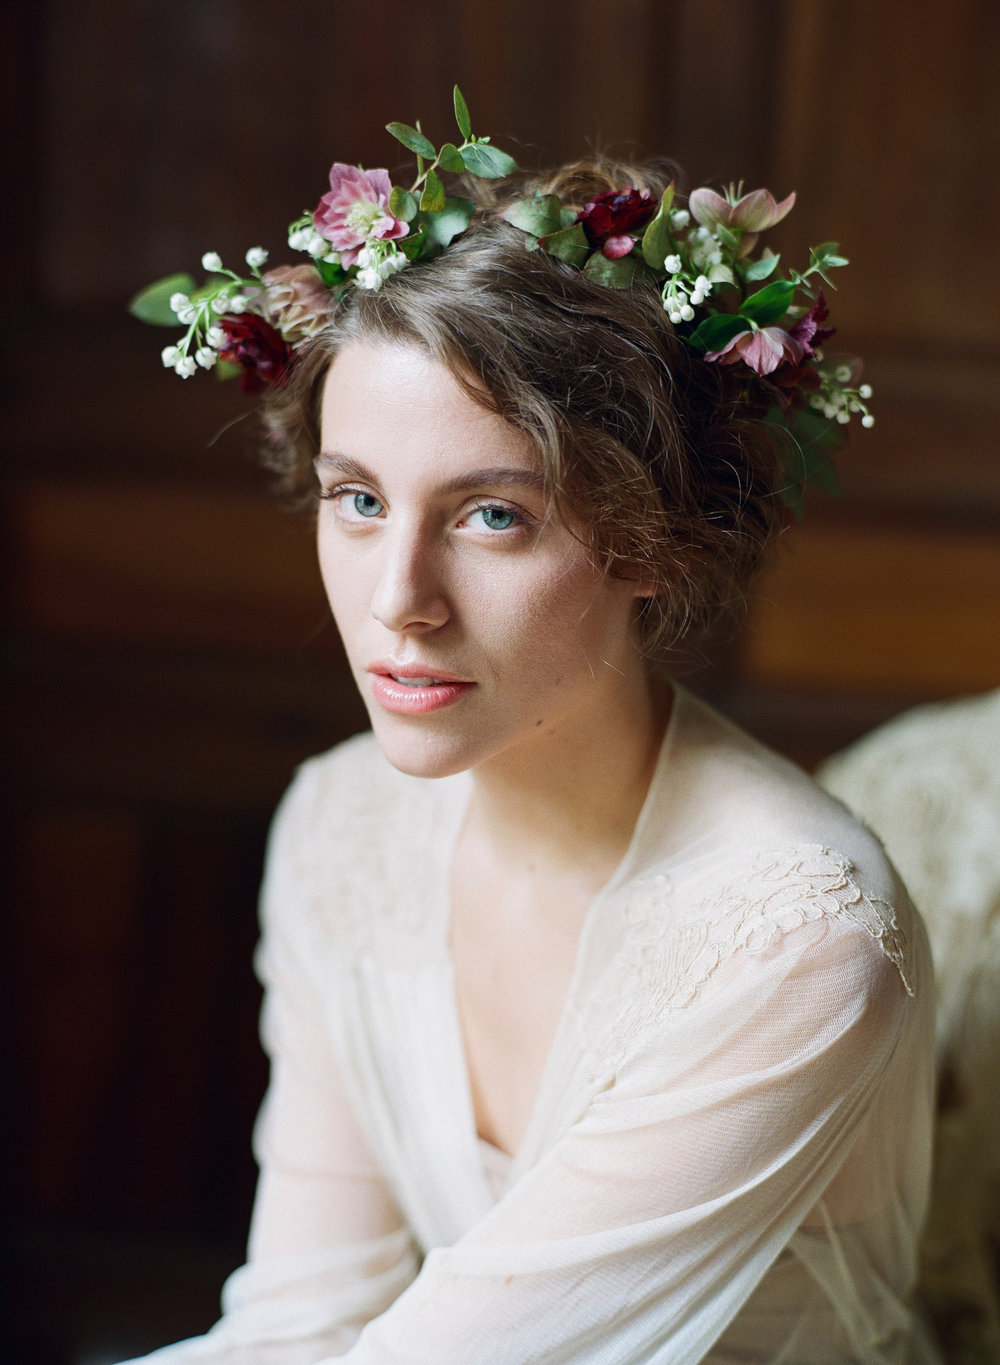 A gorgeous, moody bride with a flower crown at Chateau de Varennes in Burgundy; Sylvie Gil Photography